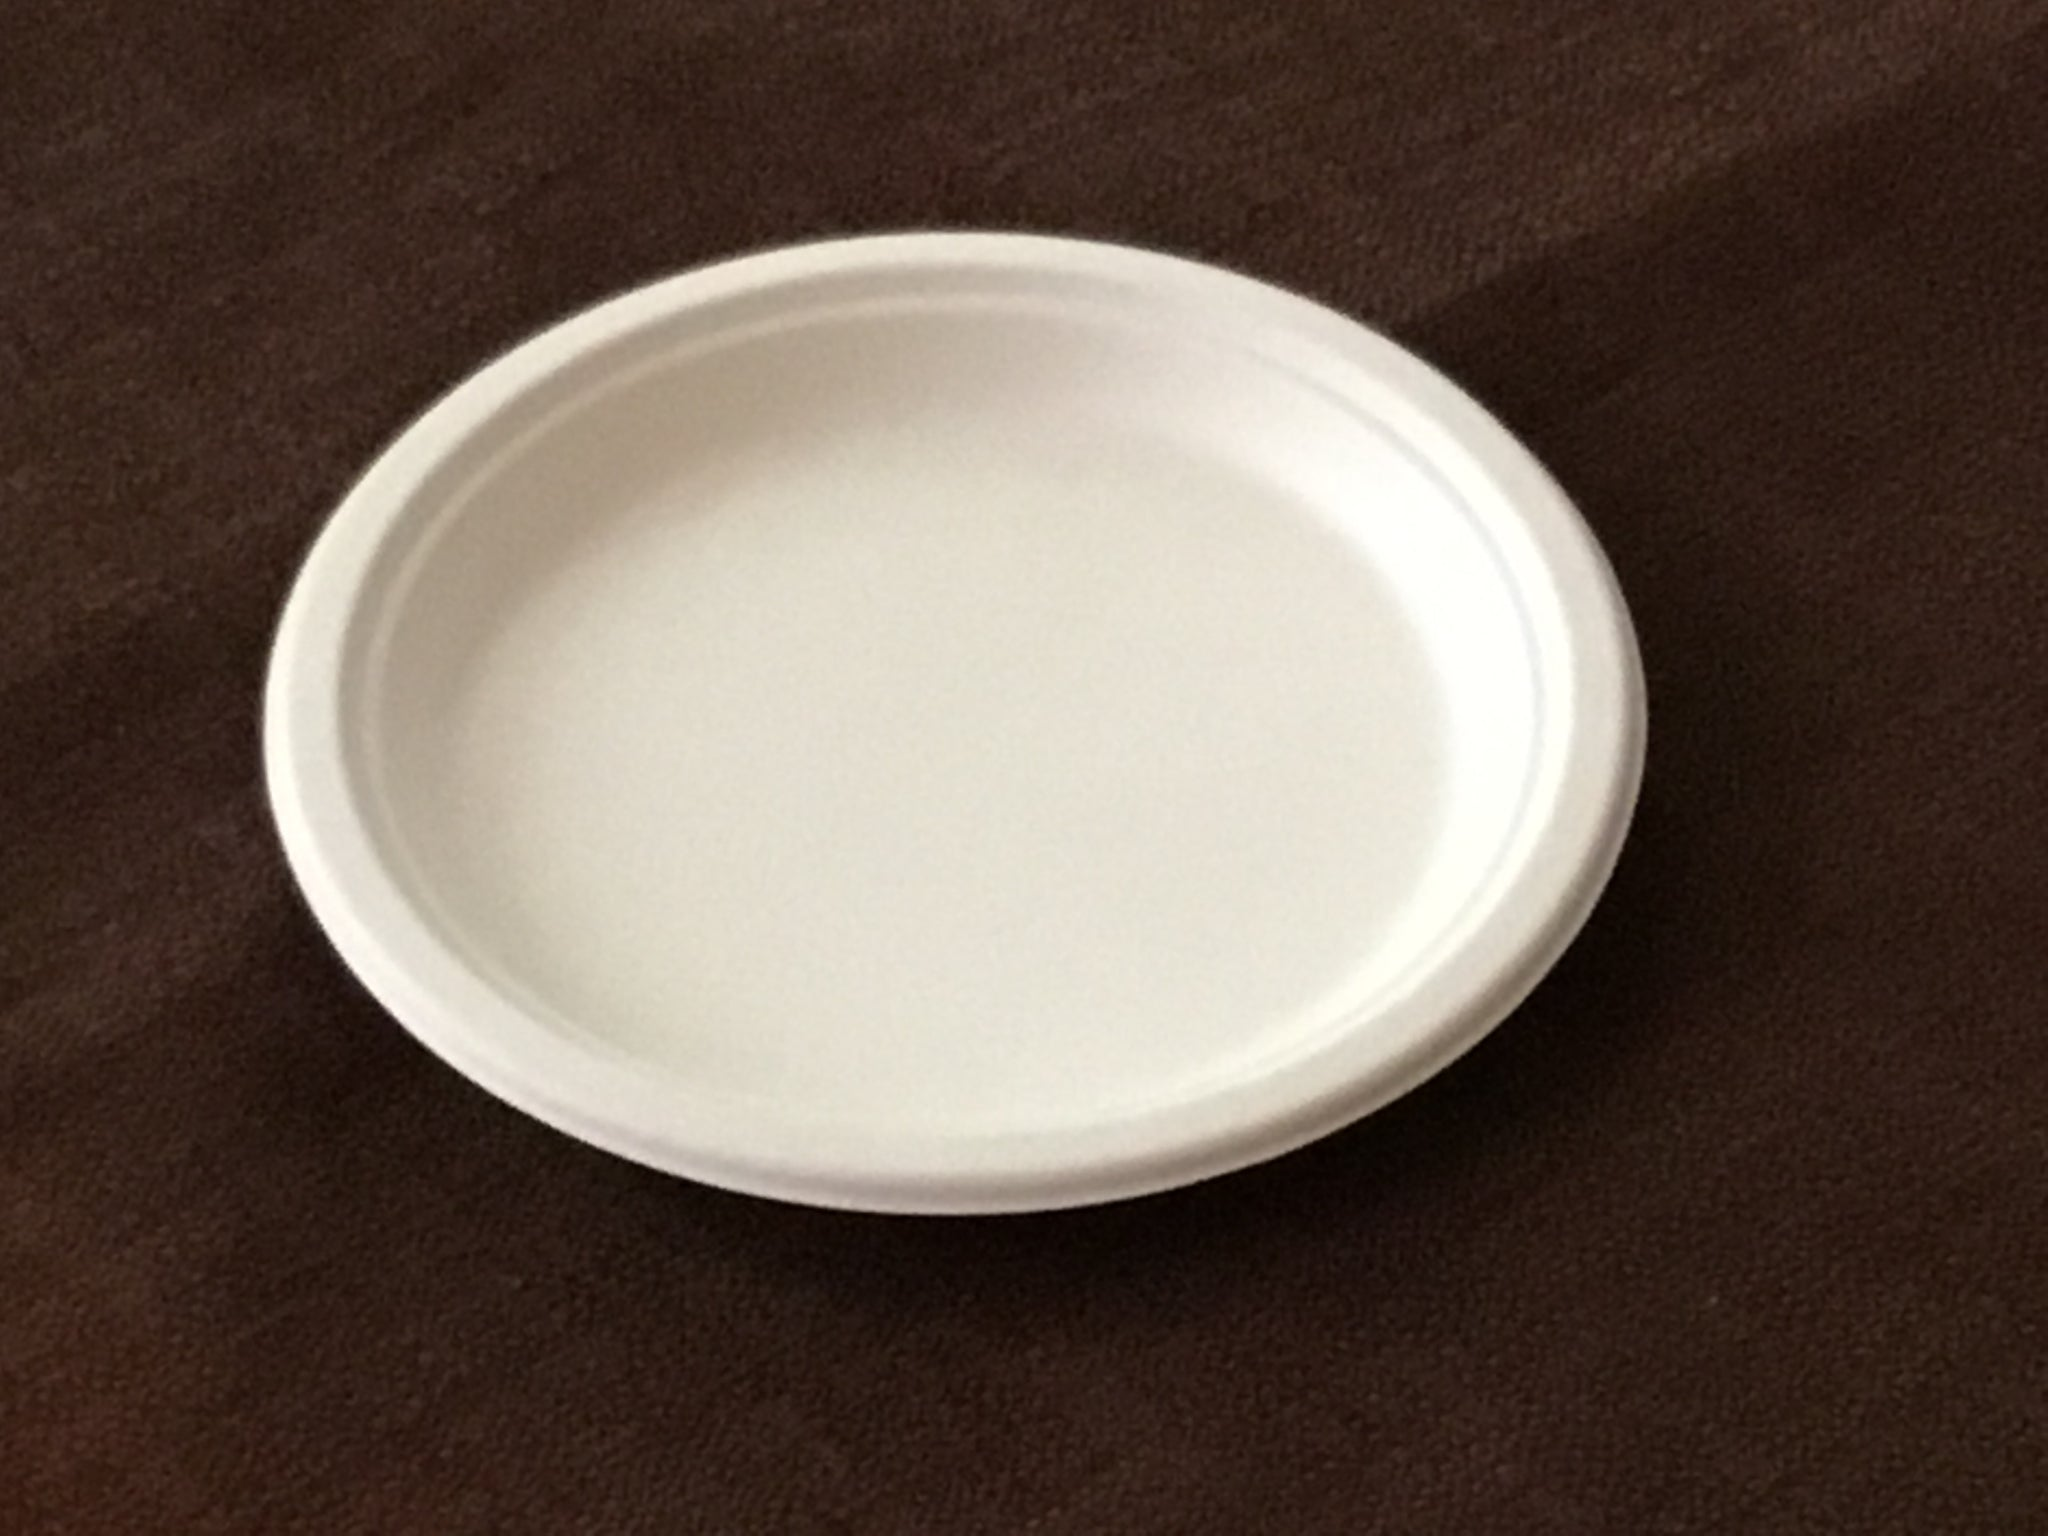 Terrahue 9 inch Round Plate, Biodegradable, Compostable